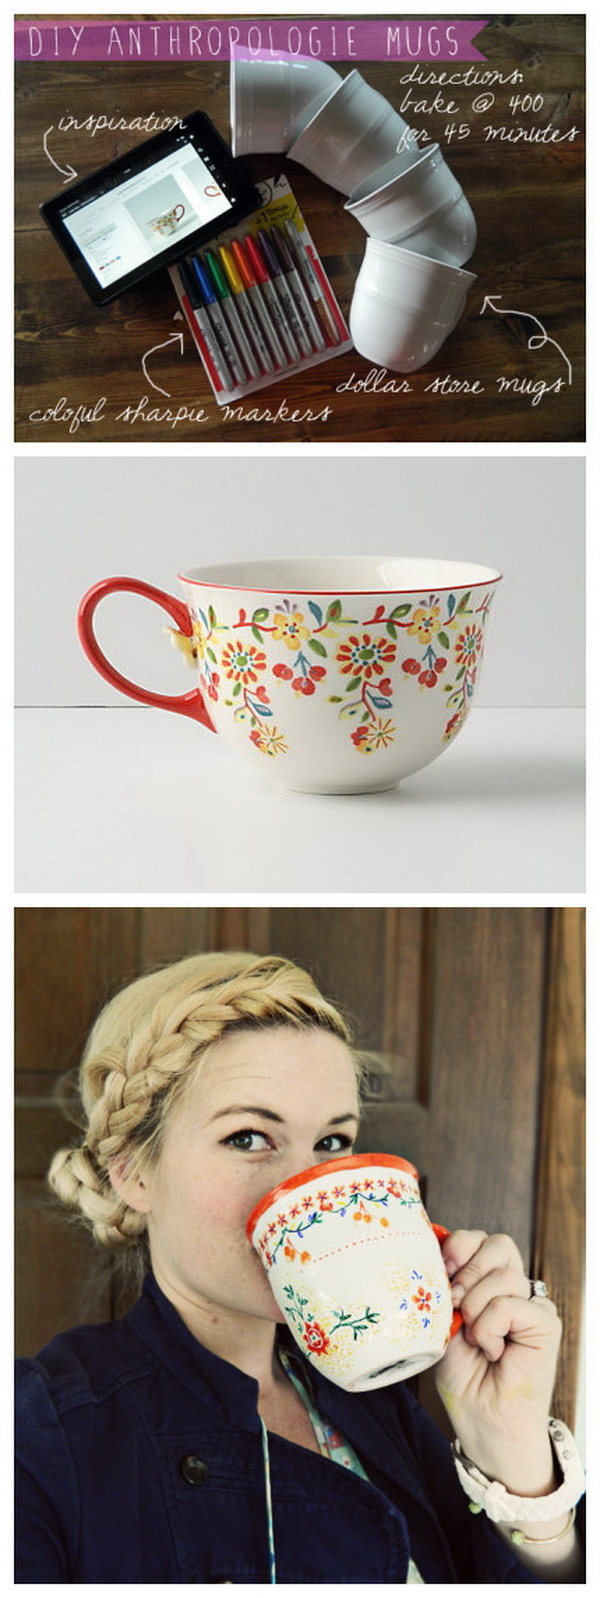 DIY Anthropologie Painted Coffee Mugs. Make your own version of this Anthropologie mug with sharpie markers in different colors. You can design it however way you want! Easy and fun to make!